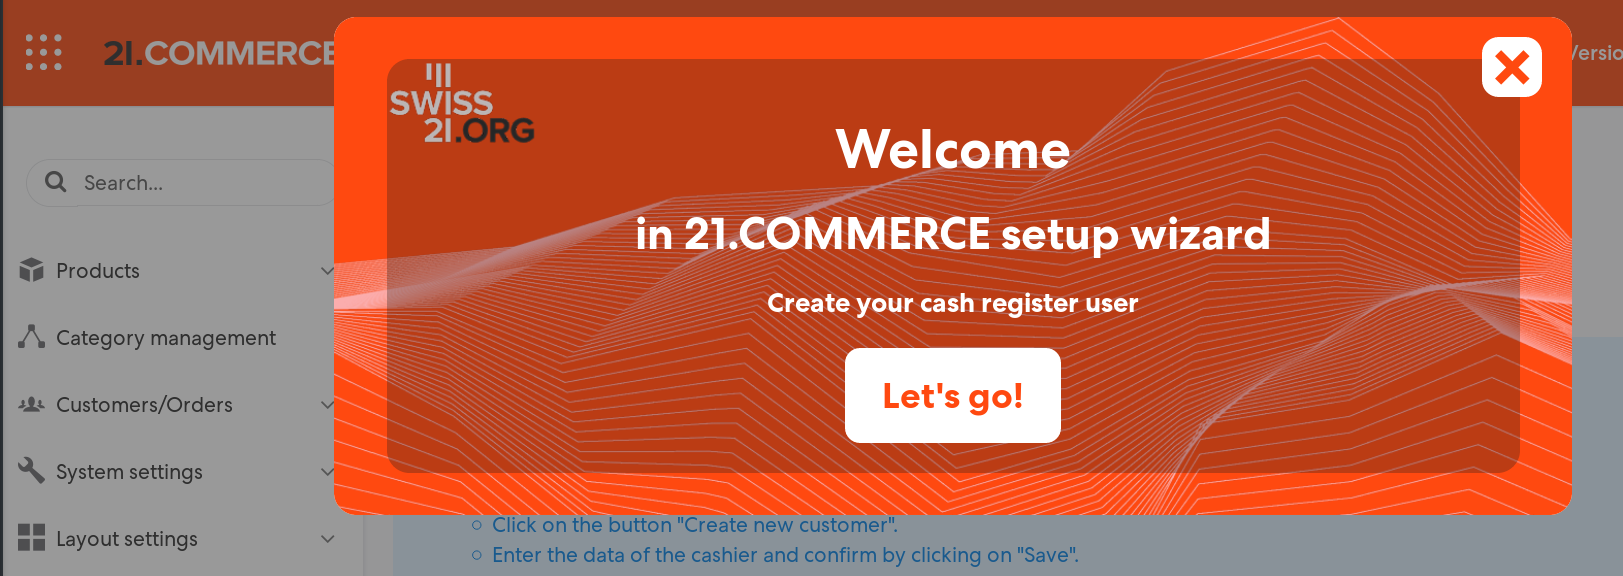 Figure 1: The first time you enter the 21.COMMERCE POS a wizard is displayed